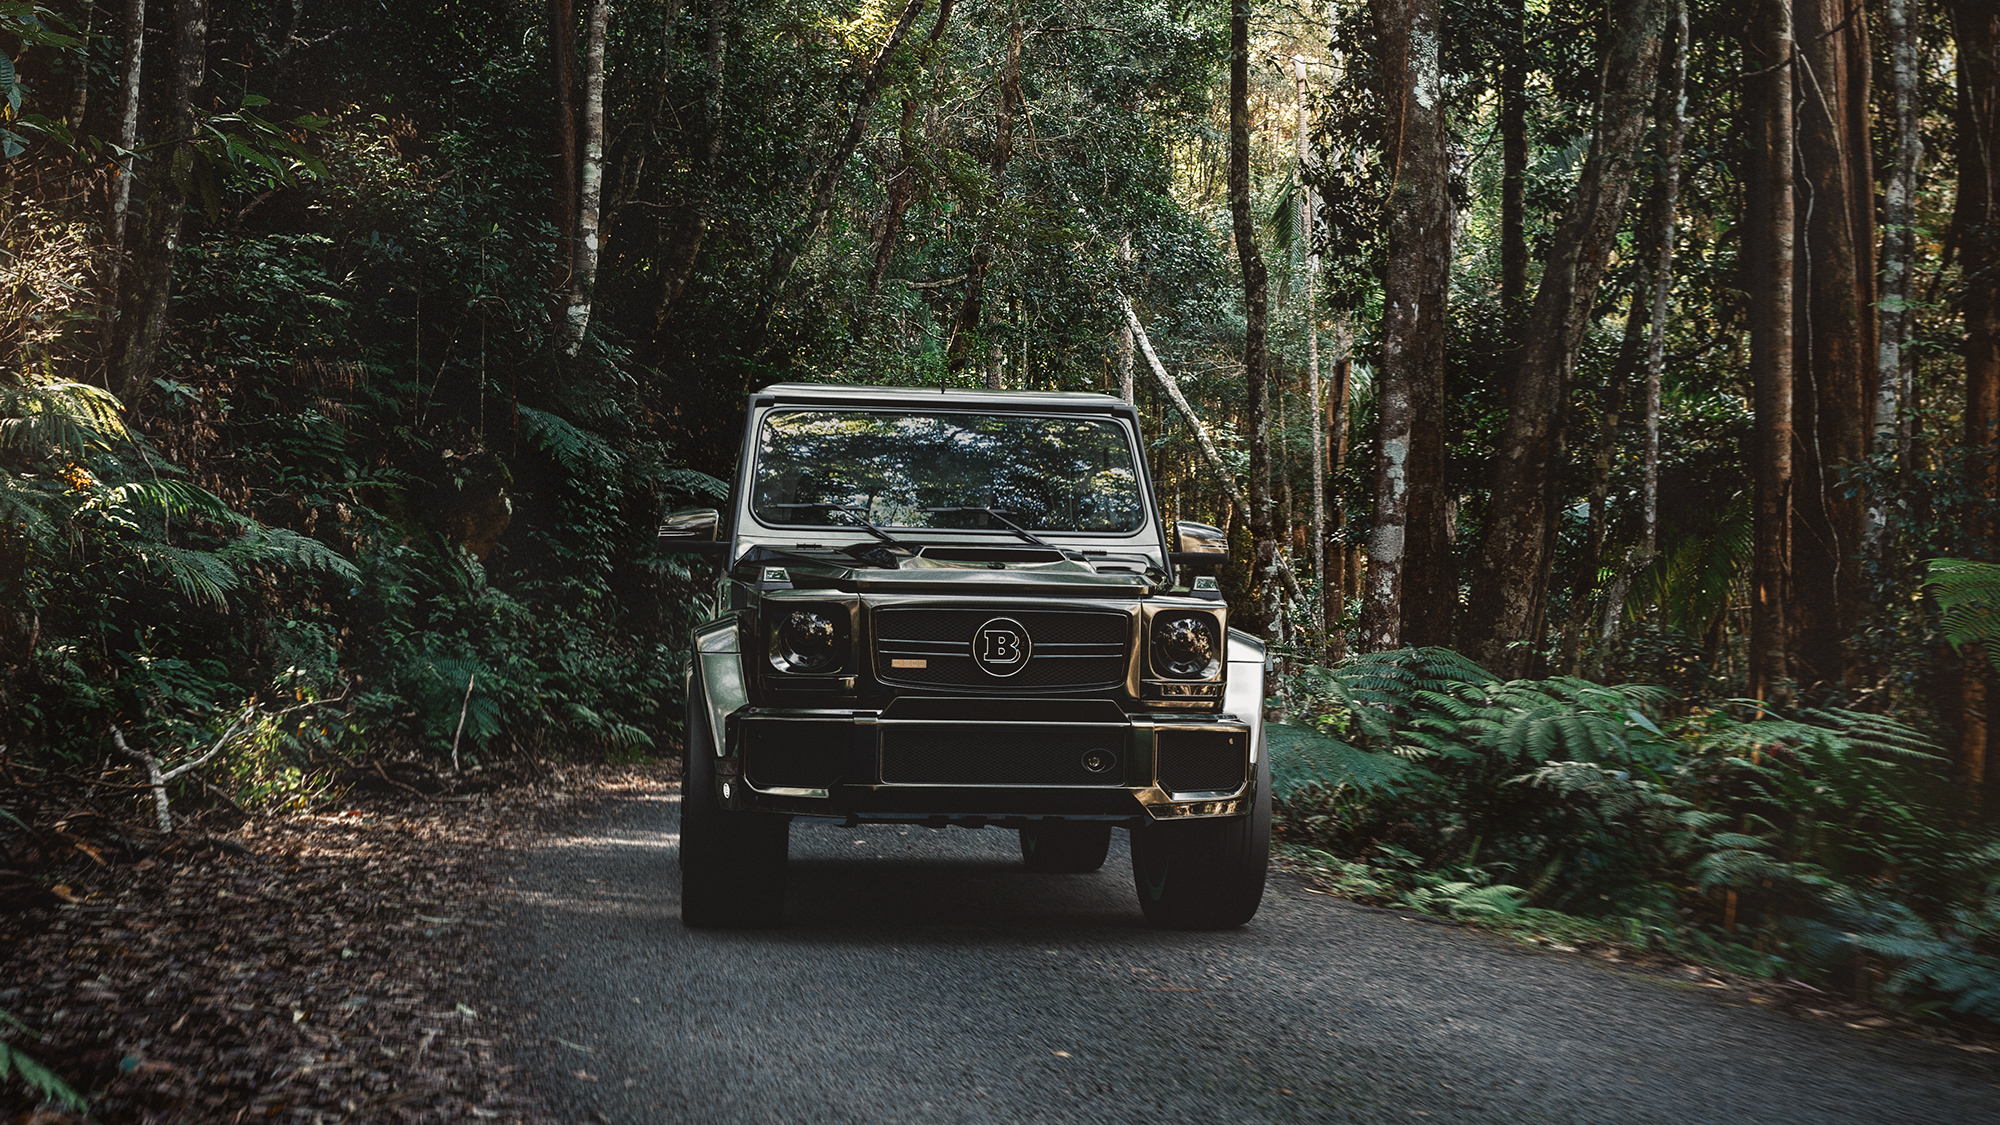 Mercedes G Wagon Car, HD Cars, 4k Wallpapers, Images ...